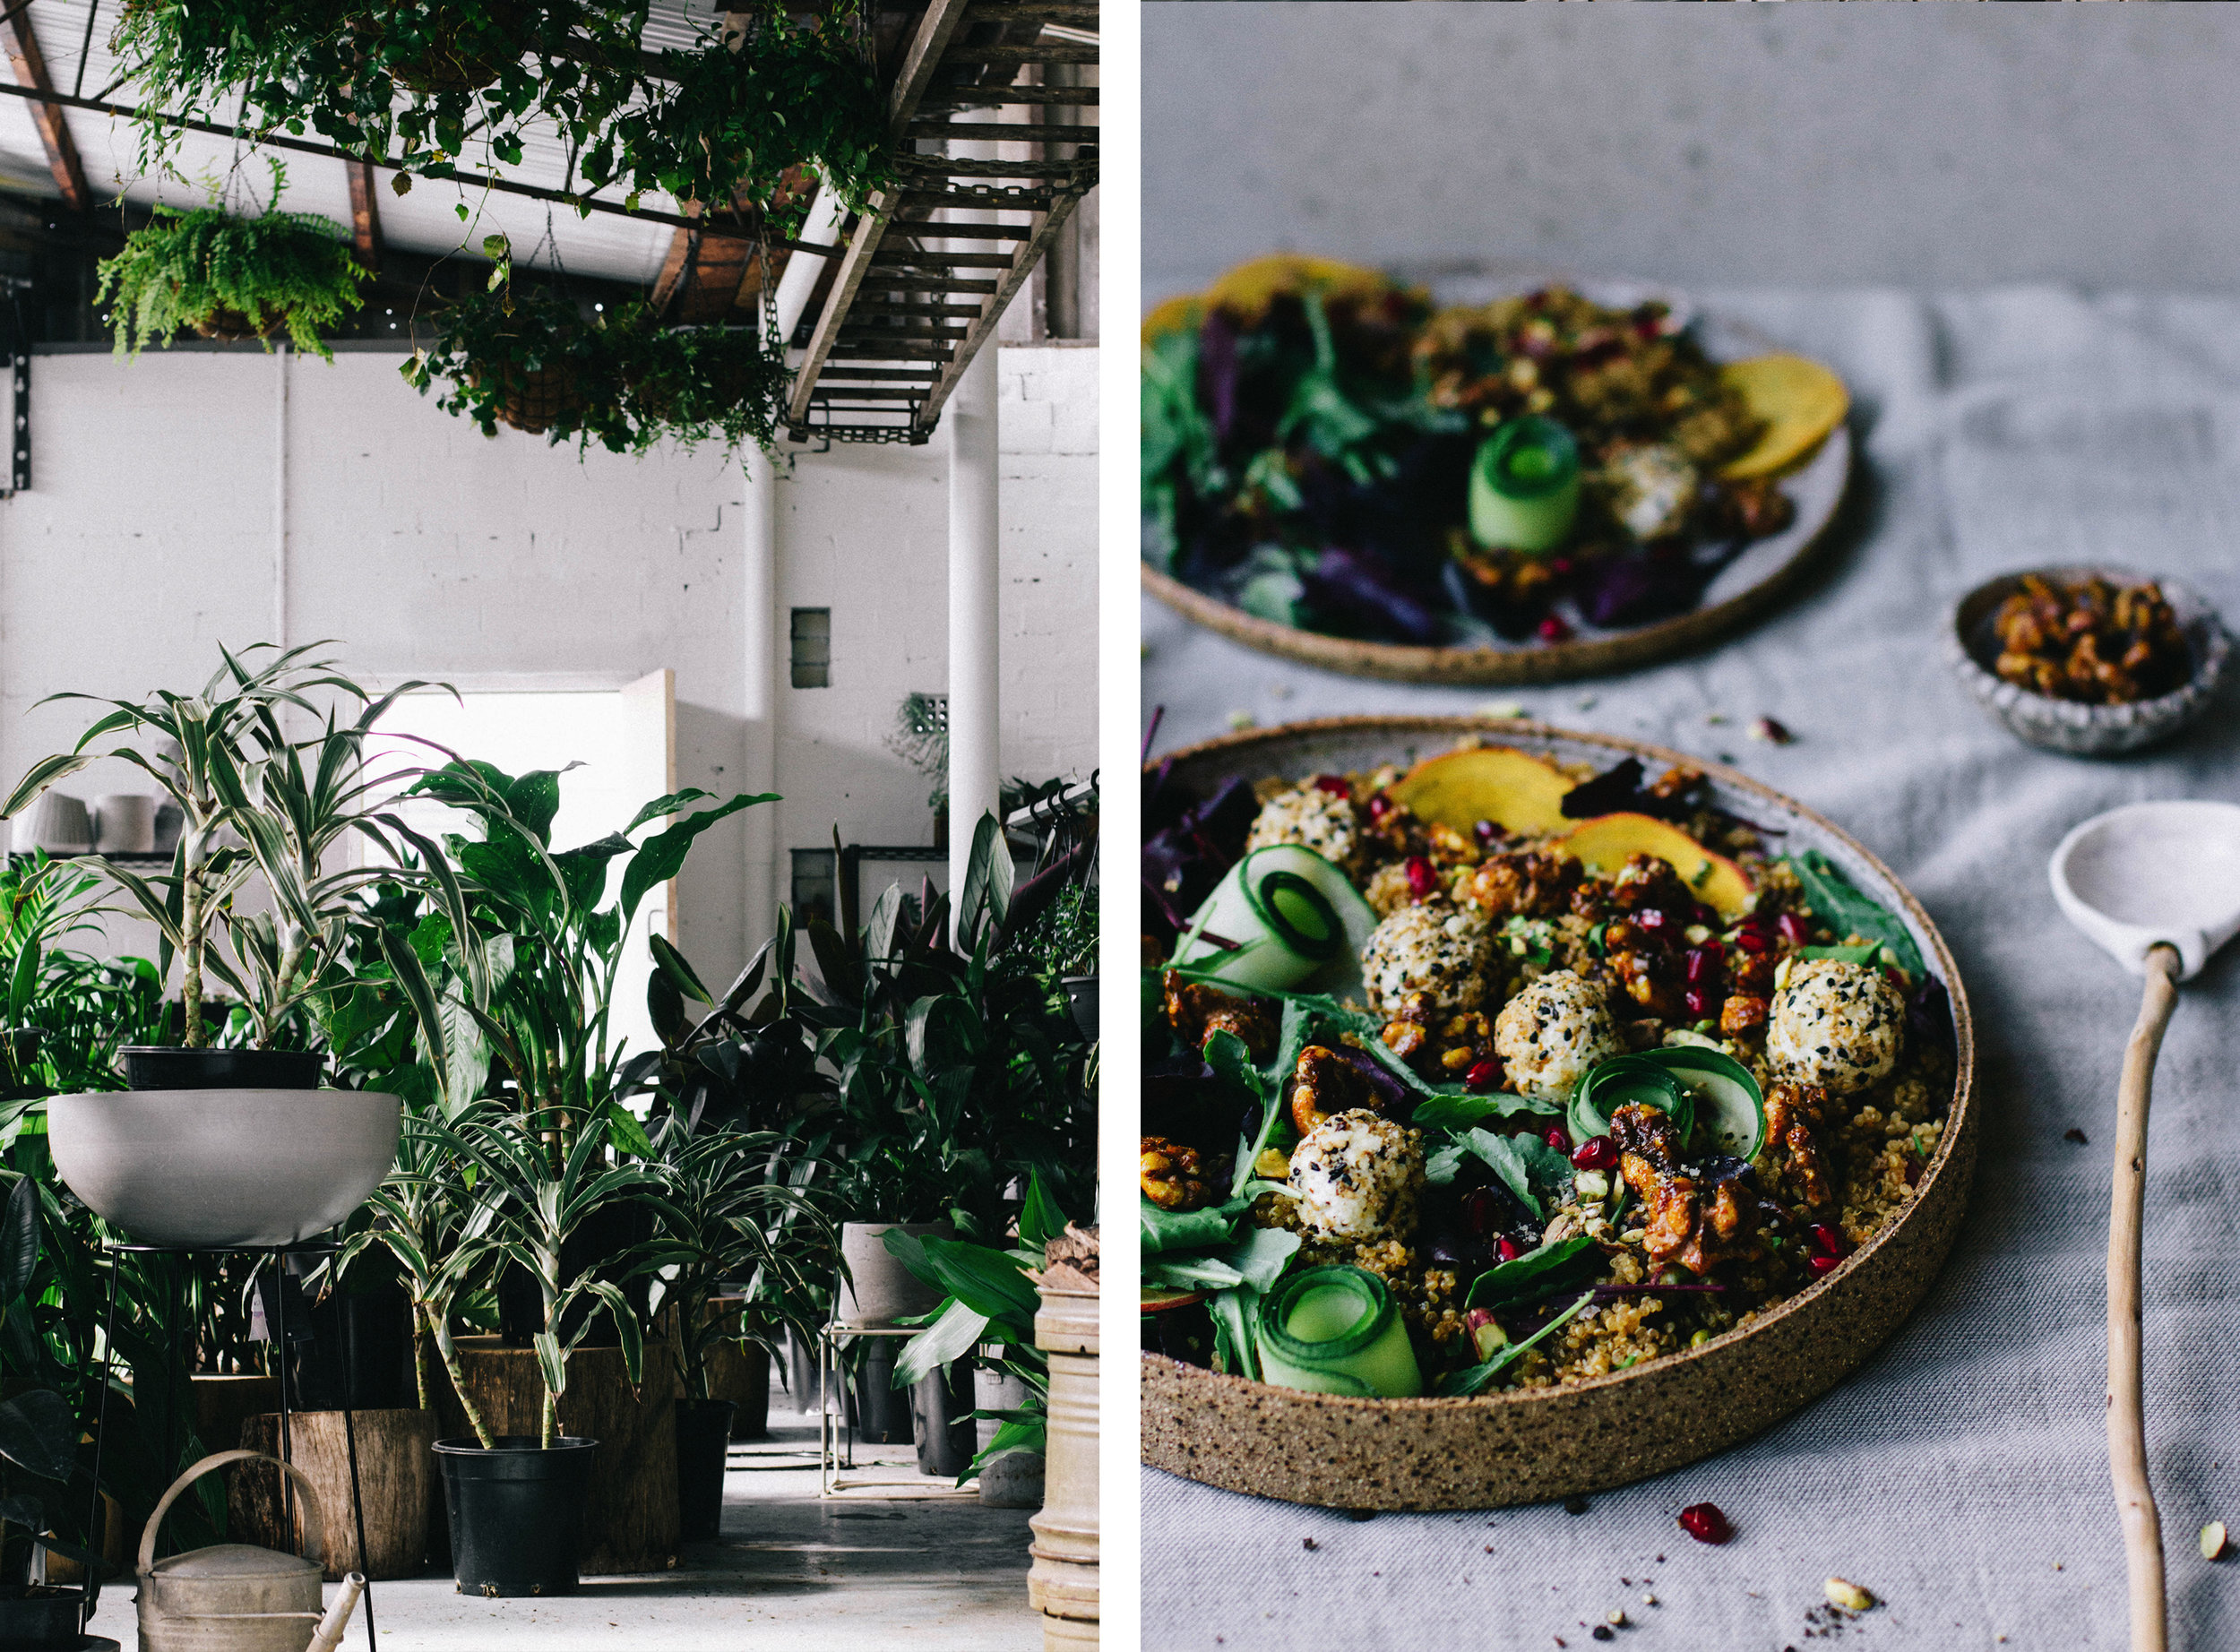 The Gathering Table⎜The Botanical Kitchen